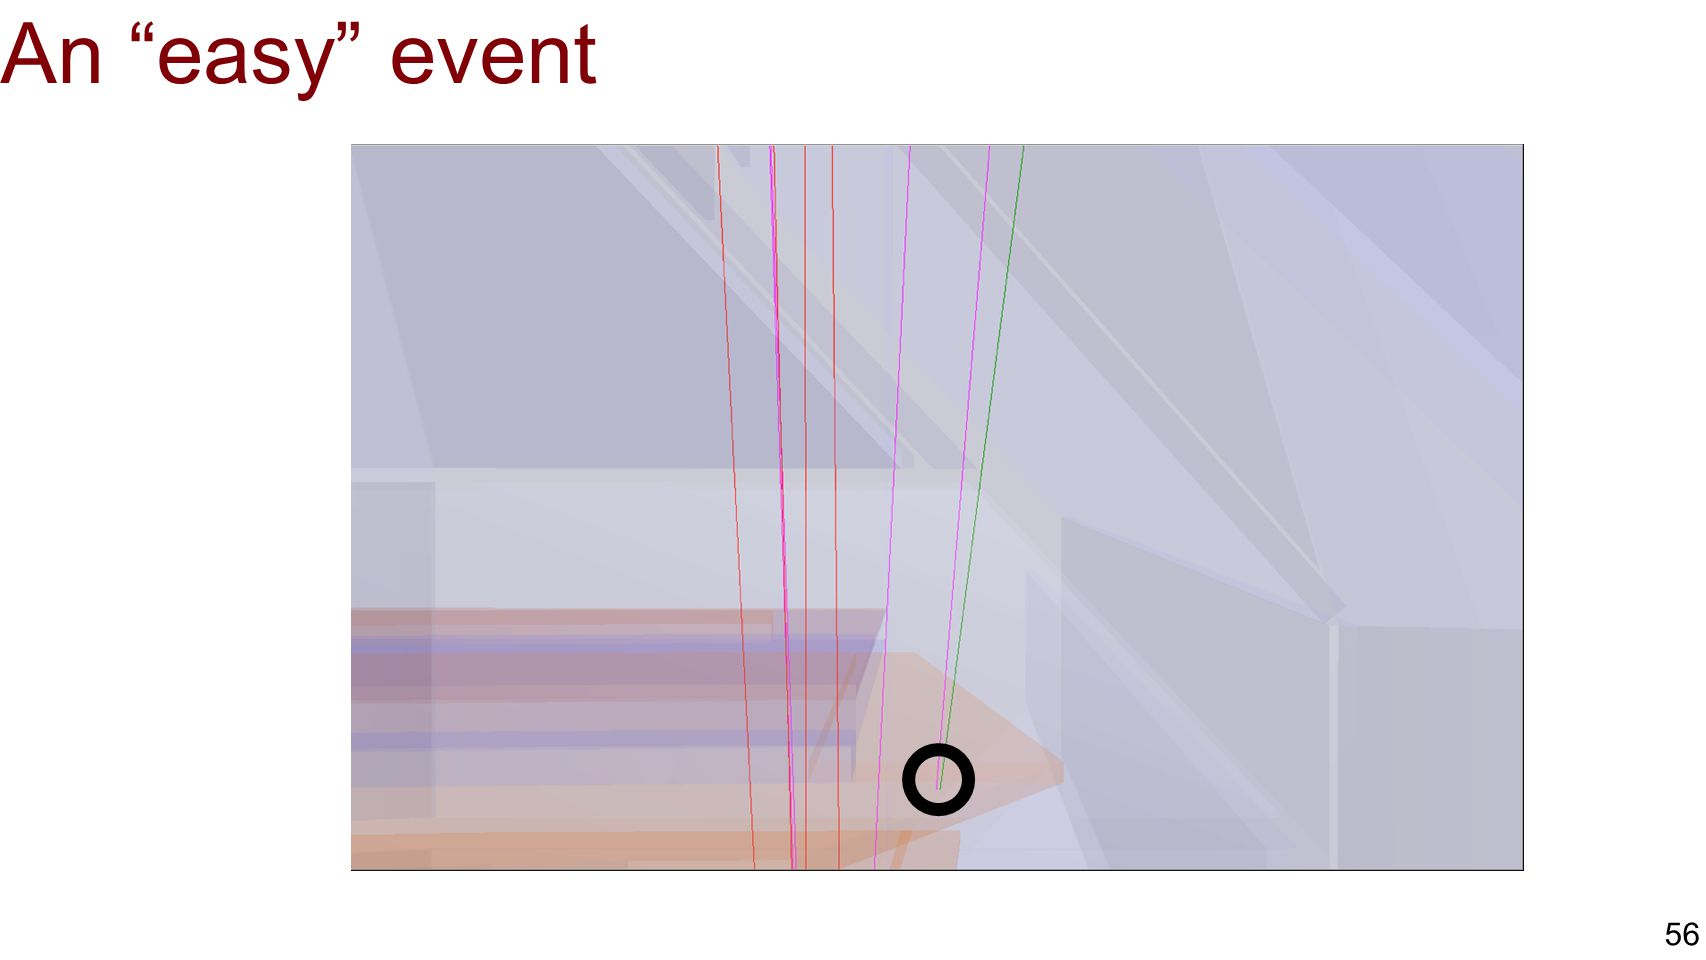 An easy event